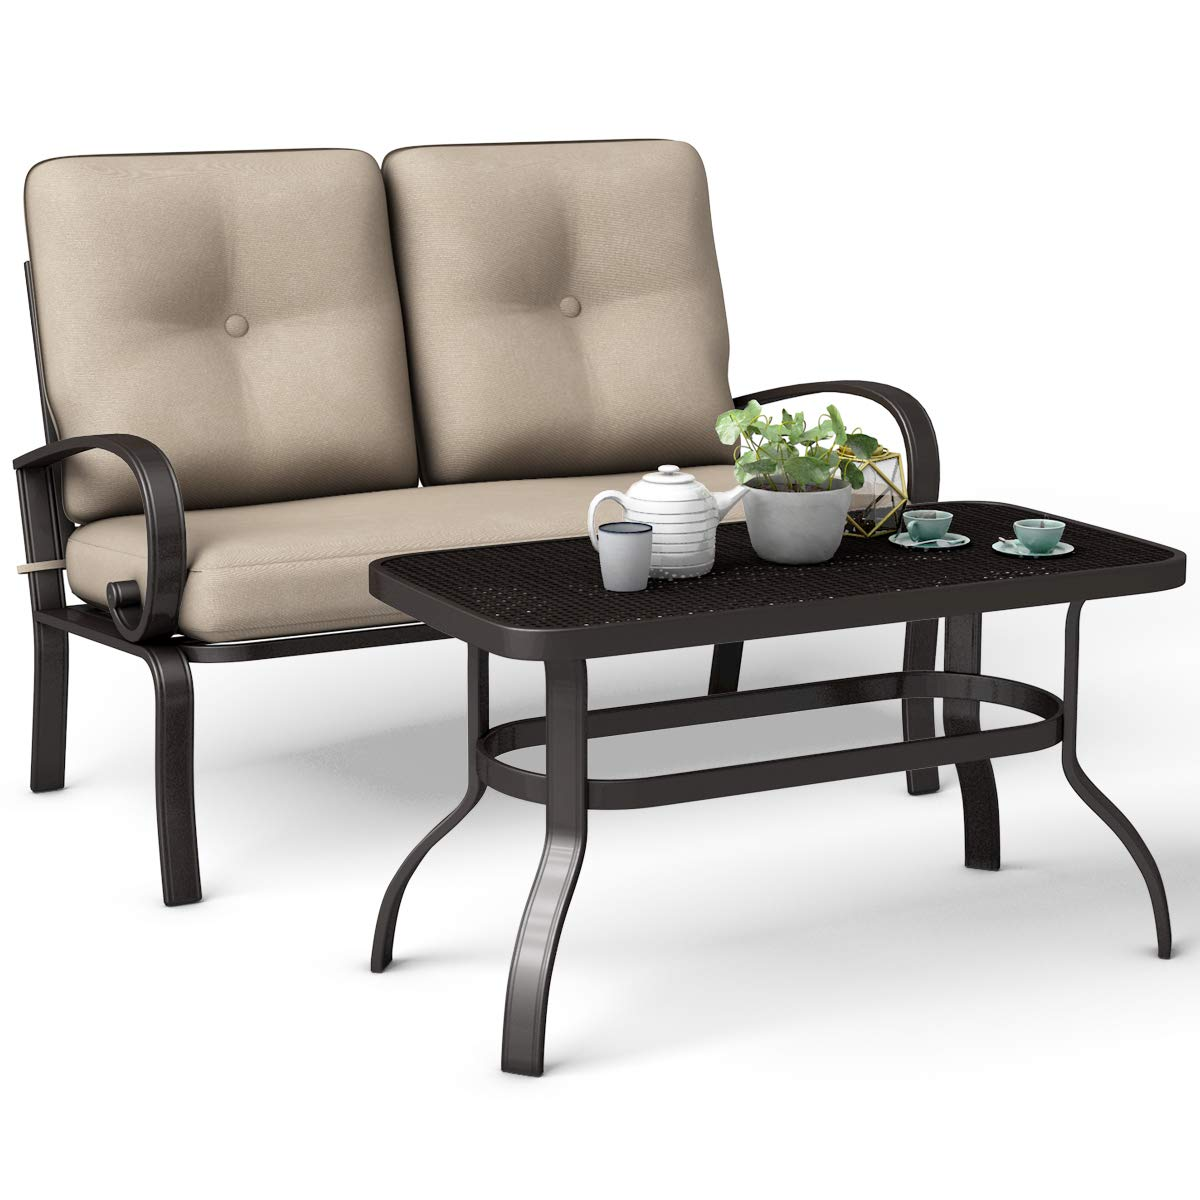 Giantex 2 Pcs Patio Loveseat with Coffee Table Outdoor Bench with Cushion and Metal Frame, Loveseat Furniture Set Sofa for Garden, Yard, Patio or Poolside by Giantex